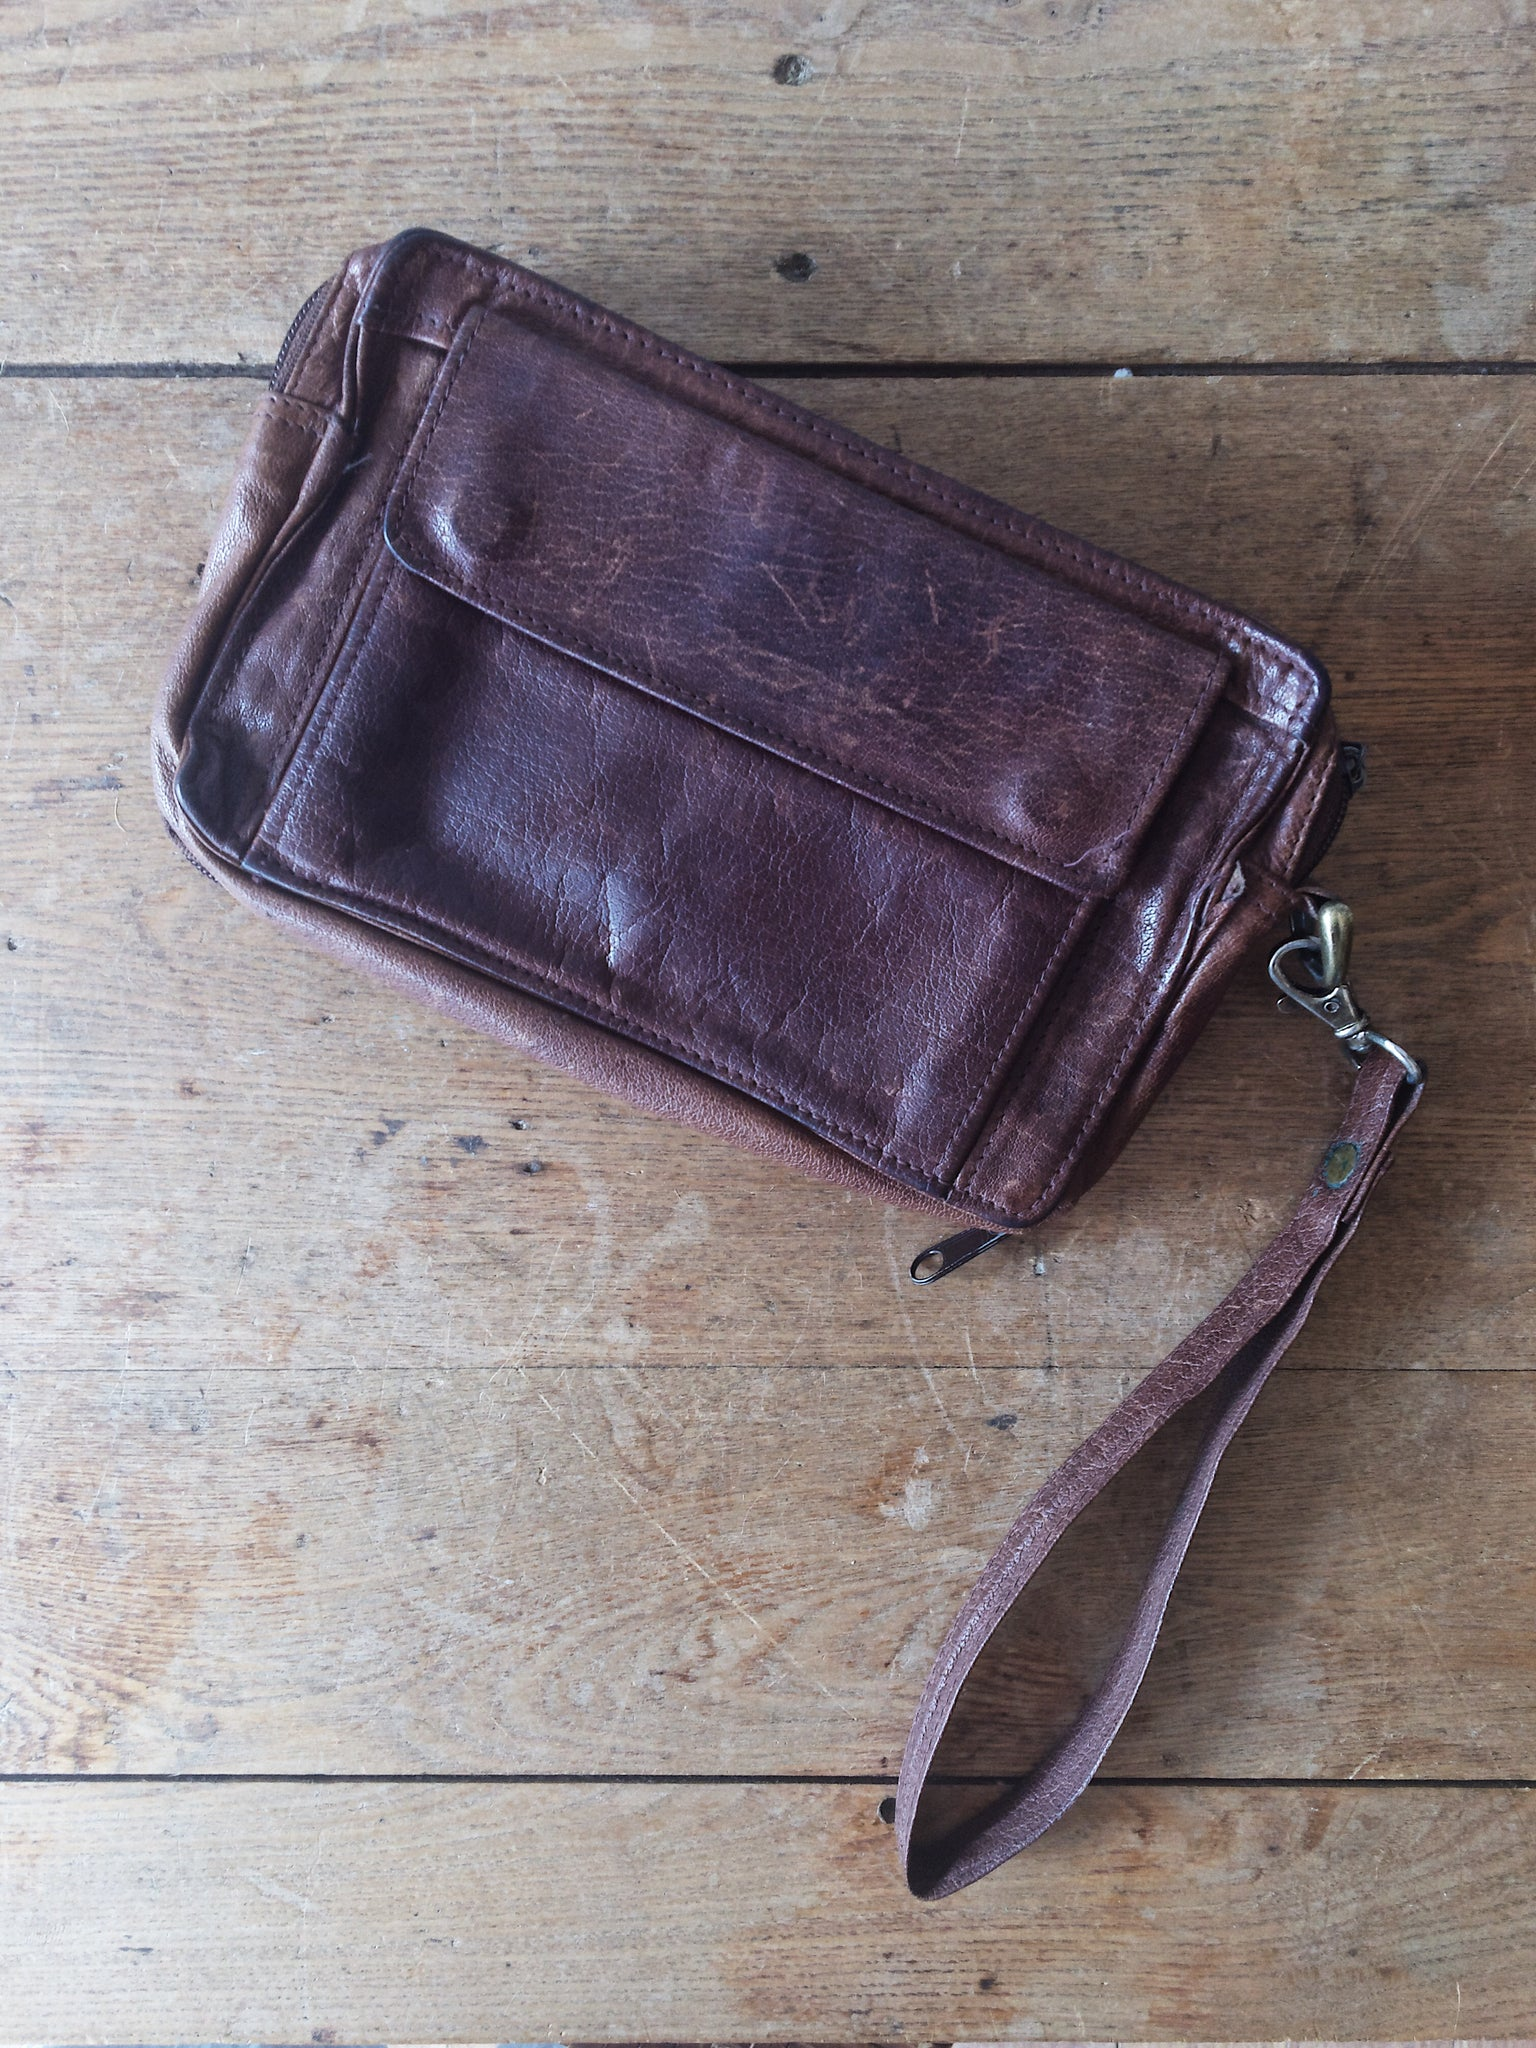 Vintage Wilson's Leather Wallet Clutch